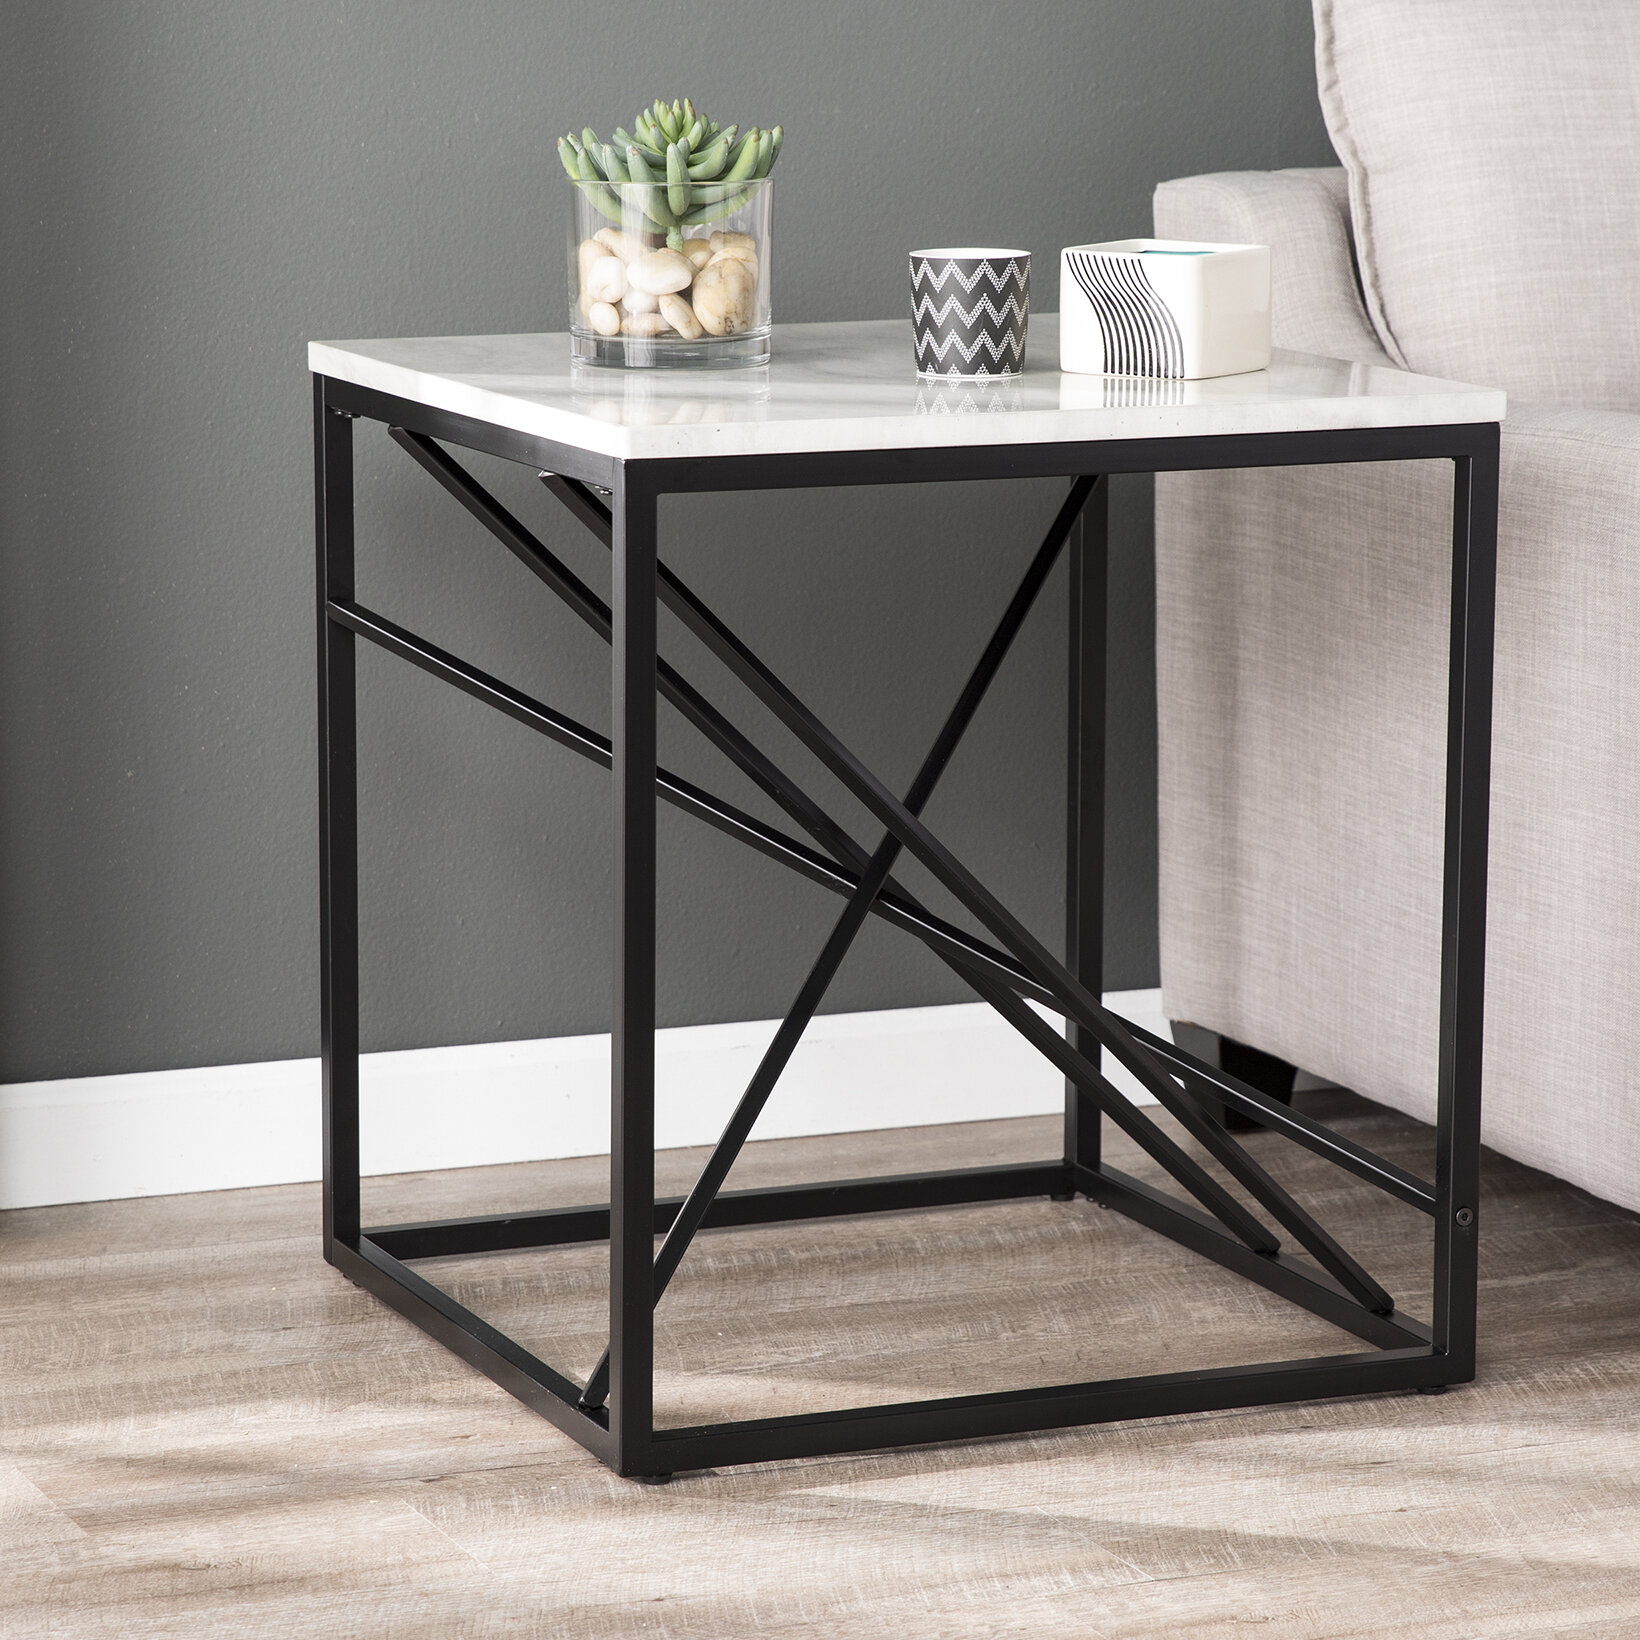 Ivy Bronx Onsted Frame End Table Reviews Wayfair